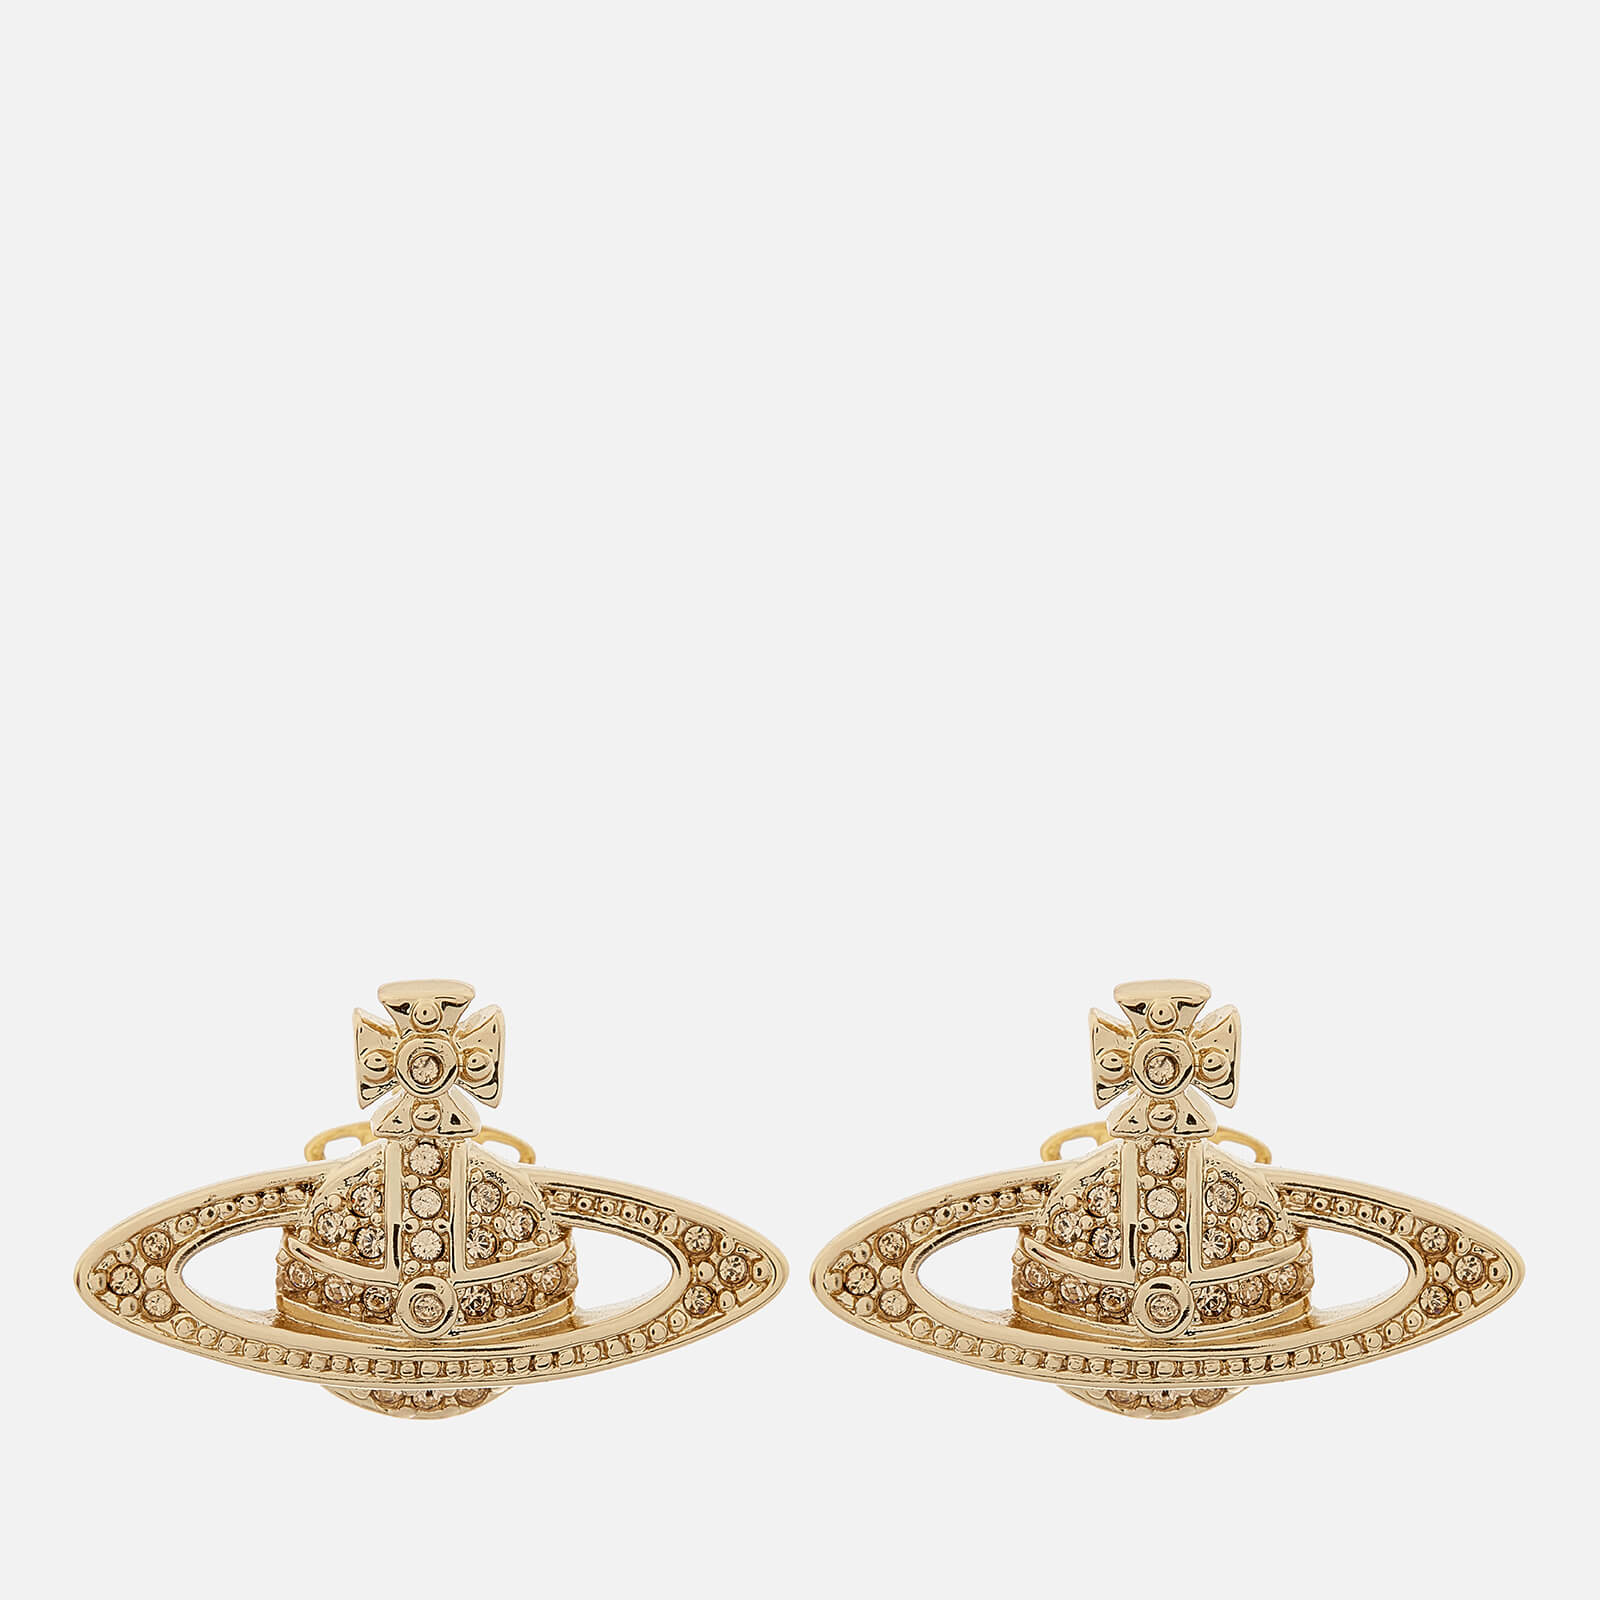 46082348846 Vivienne Westwood Women's Mini Bas Relief Earrings - Gold - Free UK  Delivery over £50